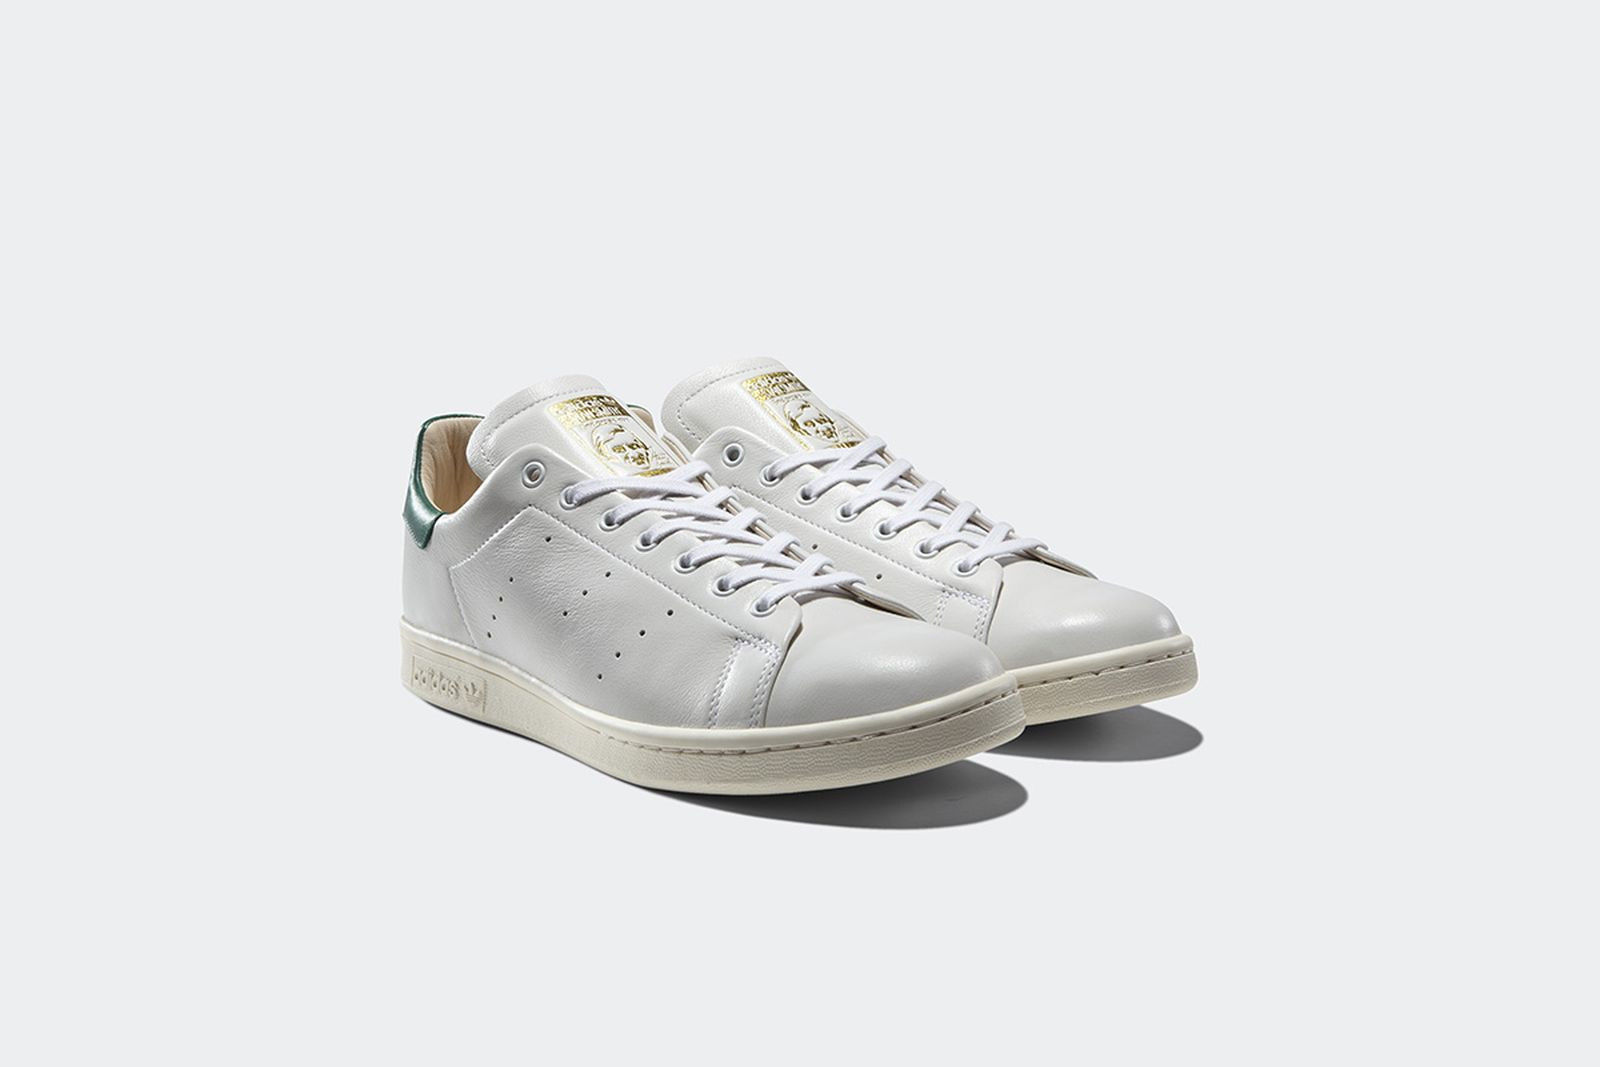 adidas stan smith recon white green release date price